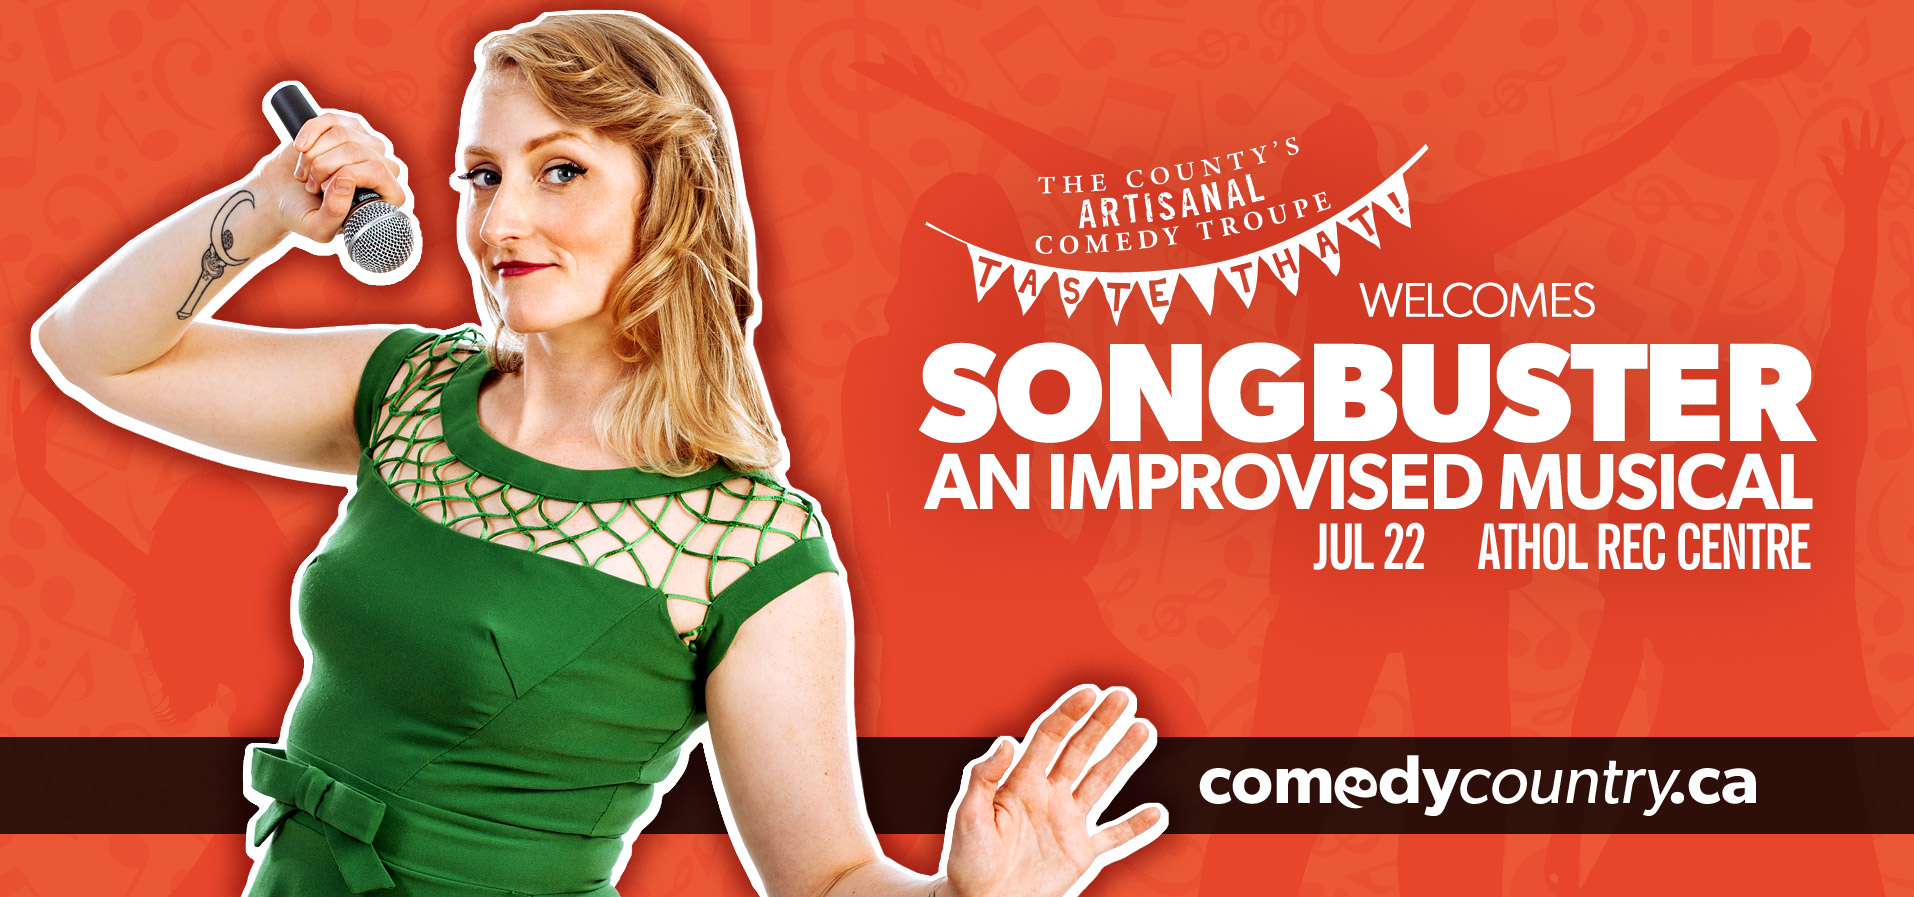 SONGBUSTER: An Improvised Musical